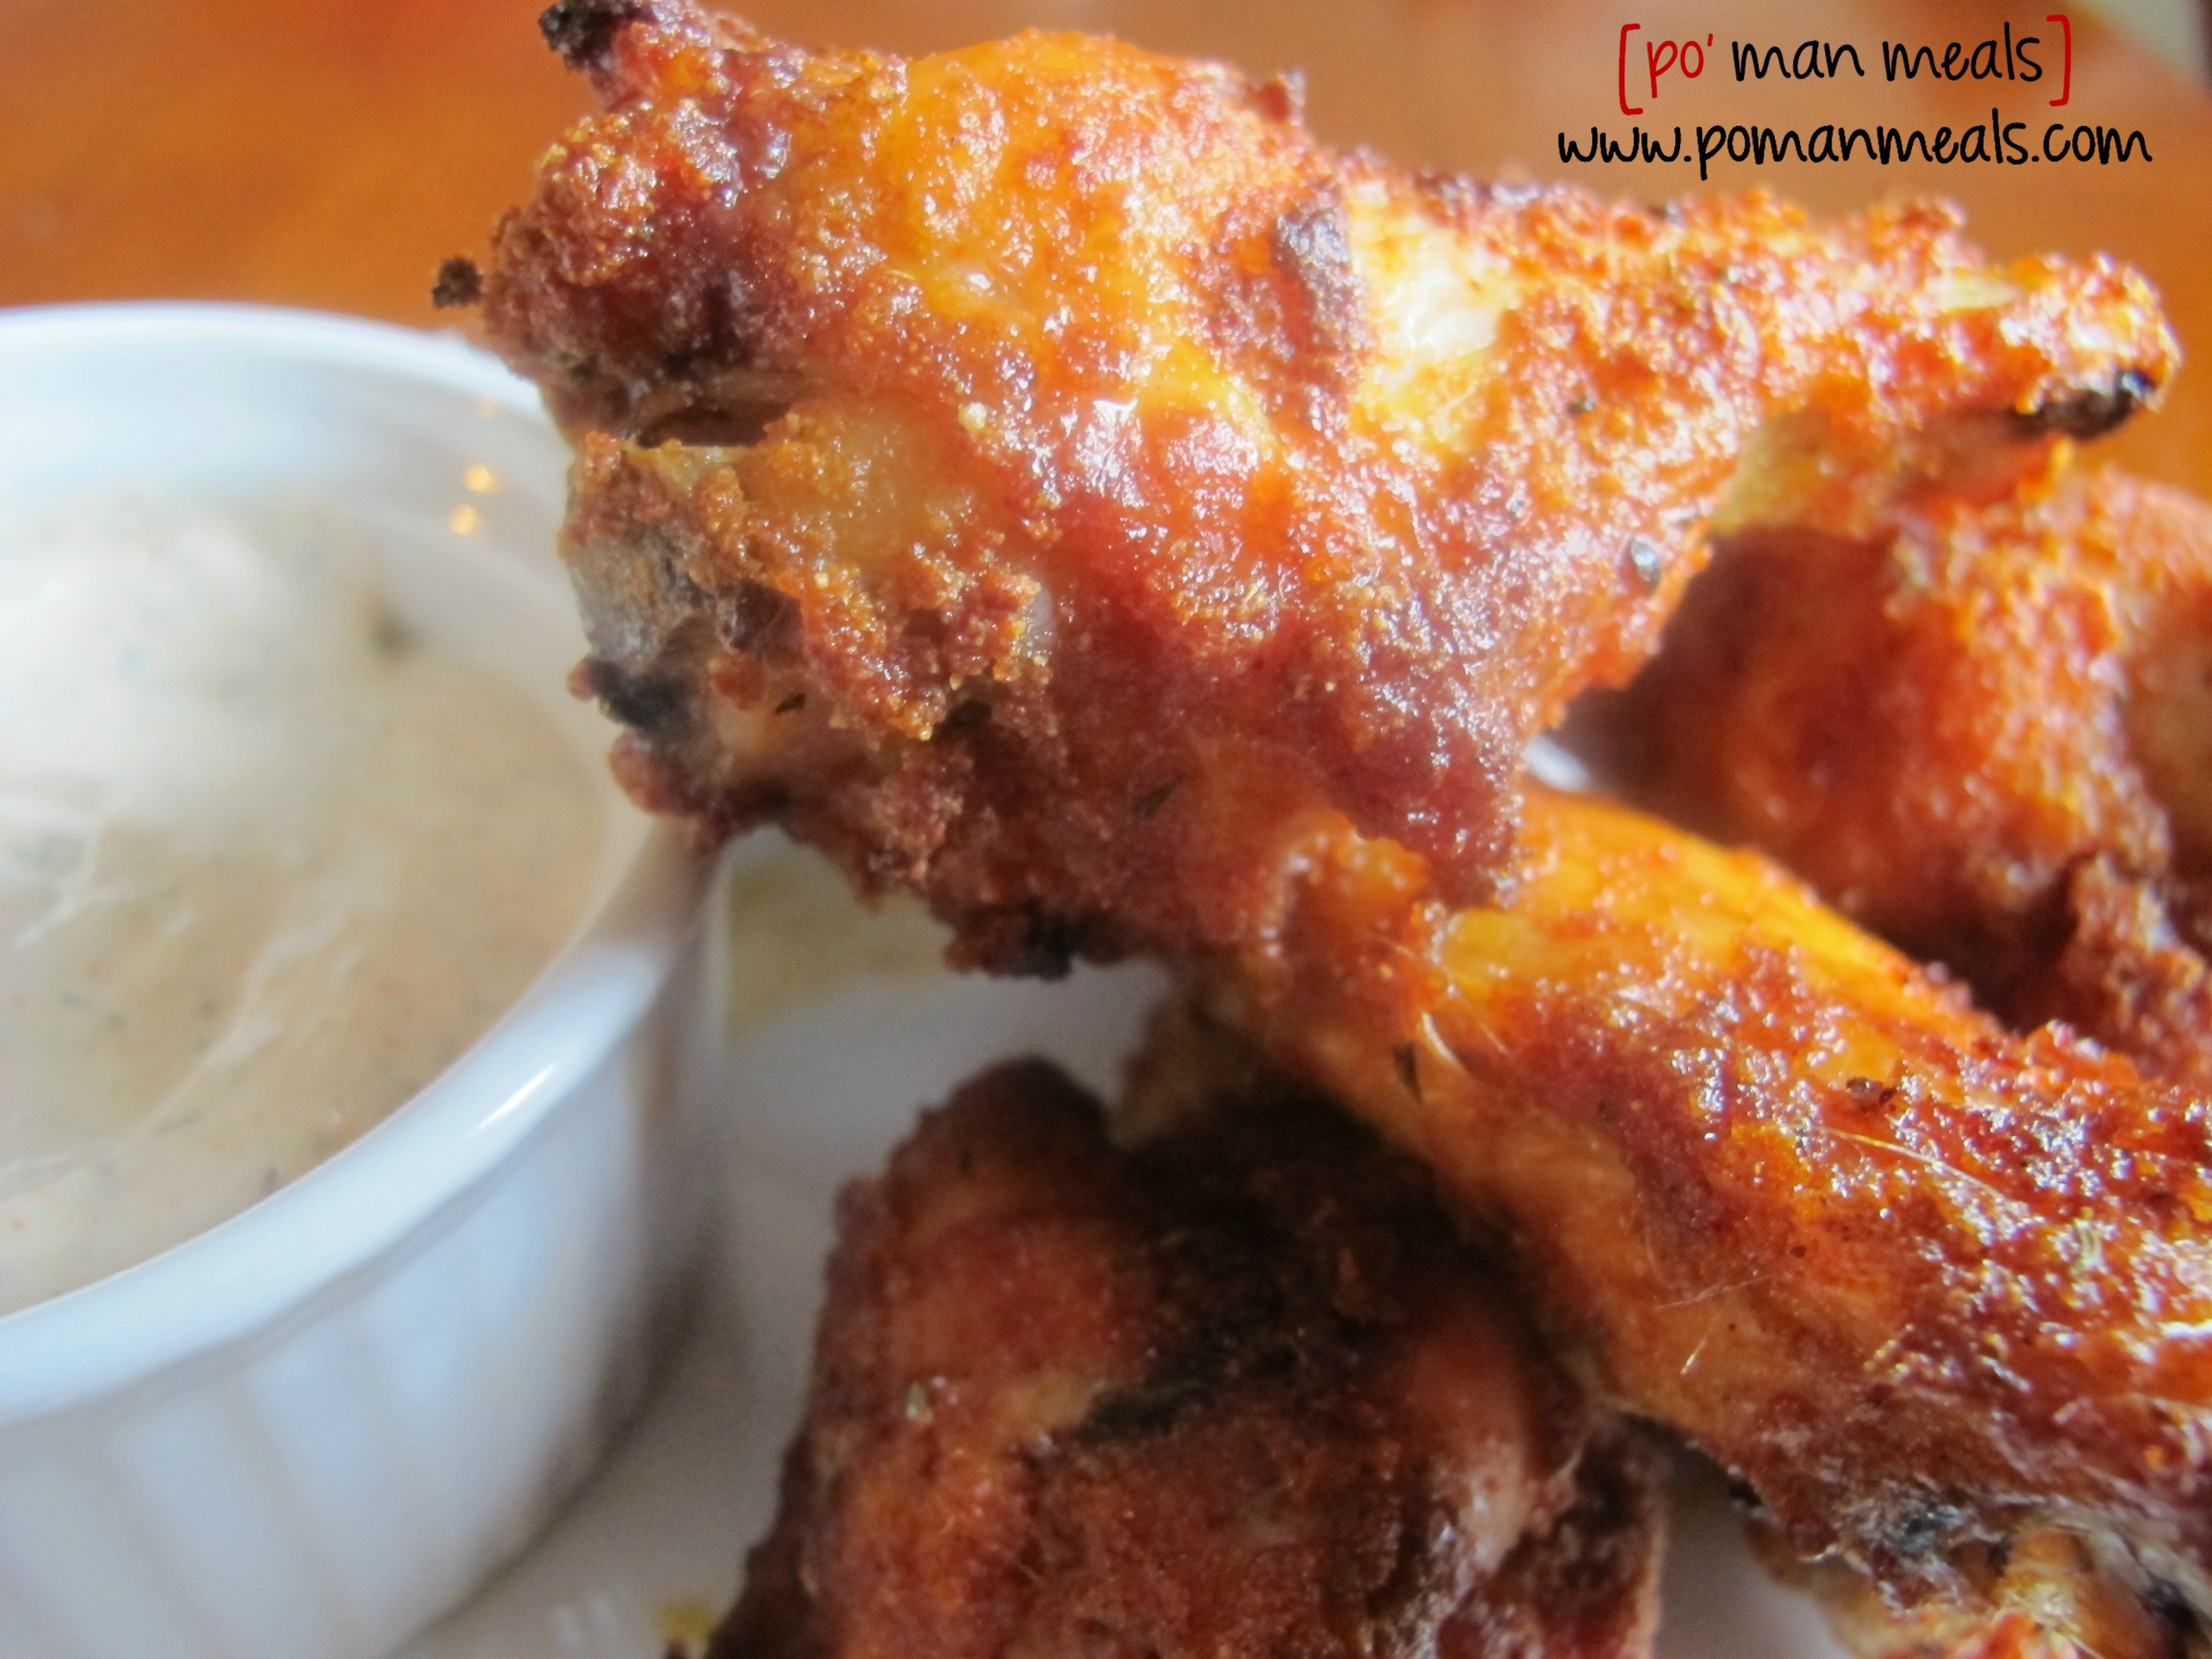 po' man meals - baked sweet and spicy chicken wings with ...